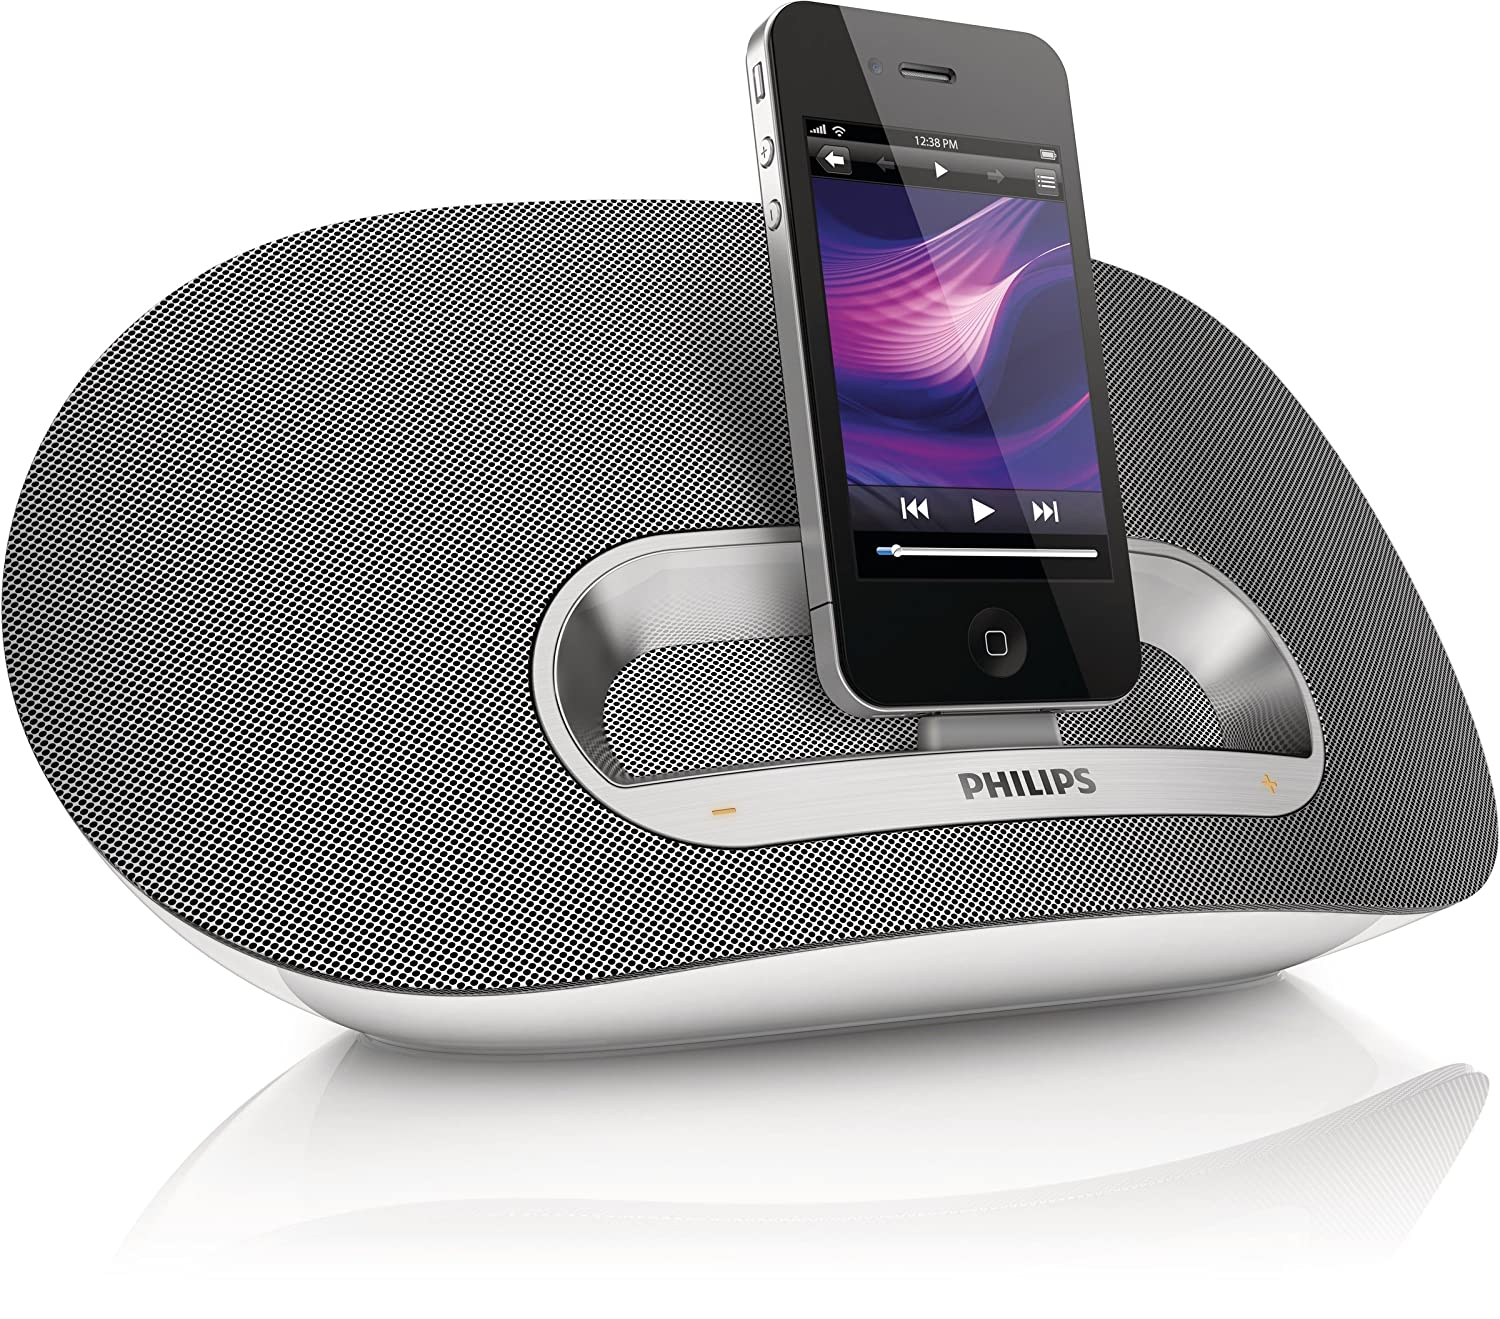 Comparer PHILIPS DS3600 GRIS